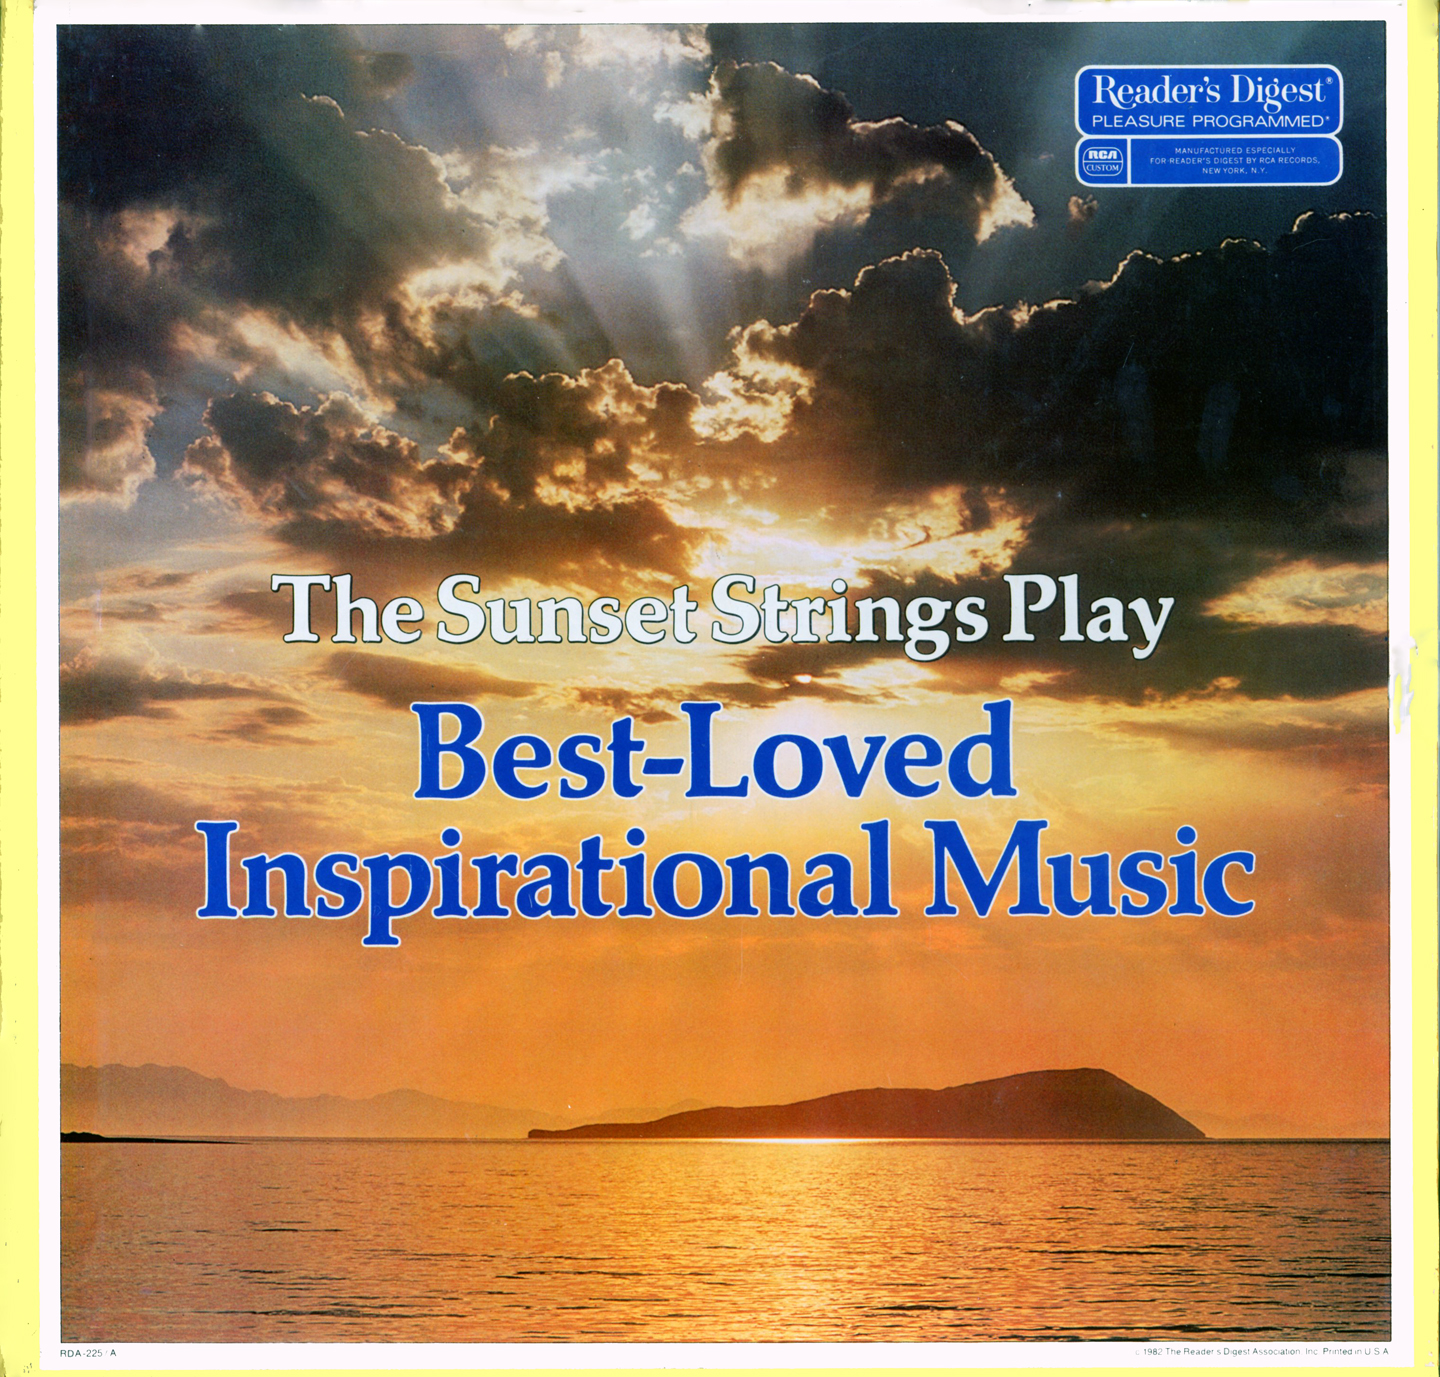 RDA225 - Best Loved Inspirational Music - Sunset Strings